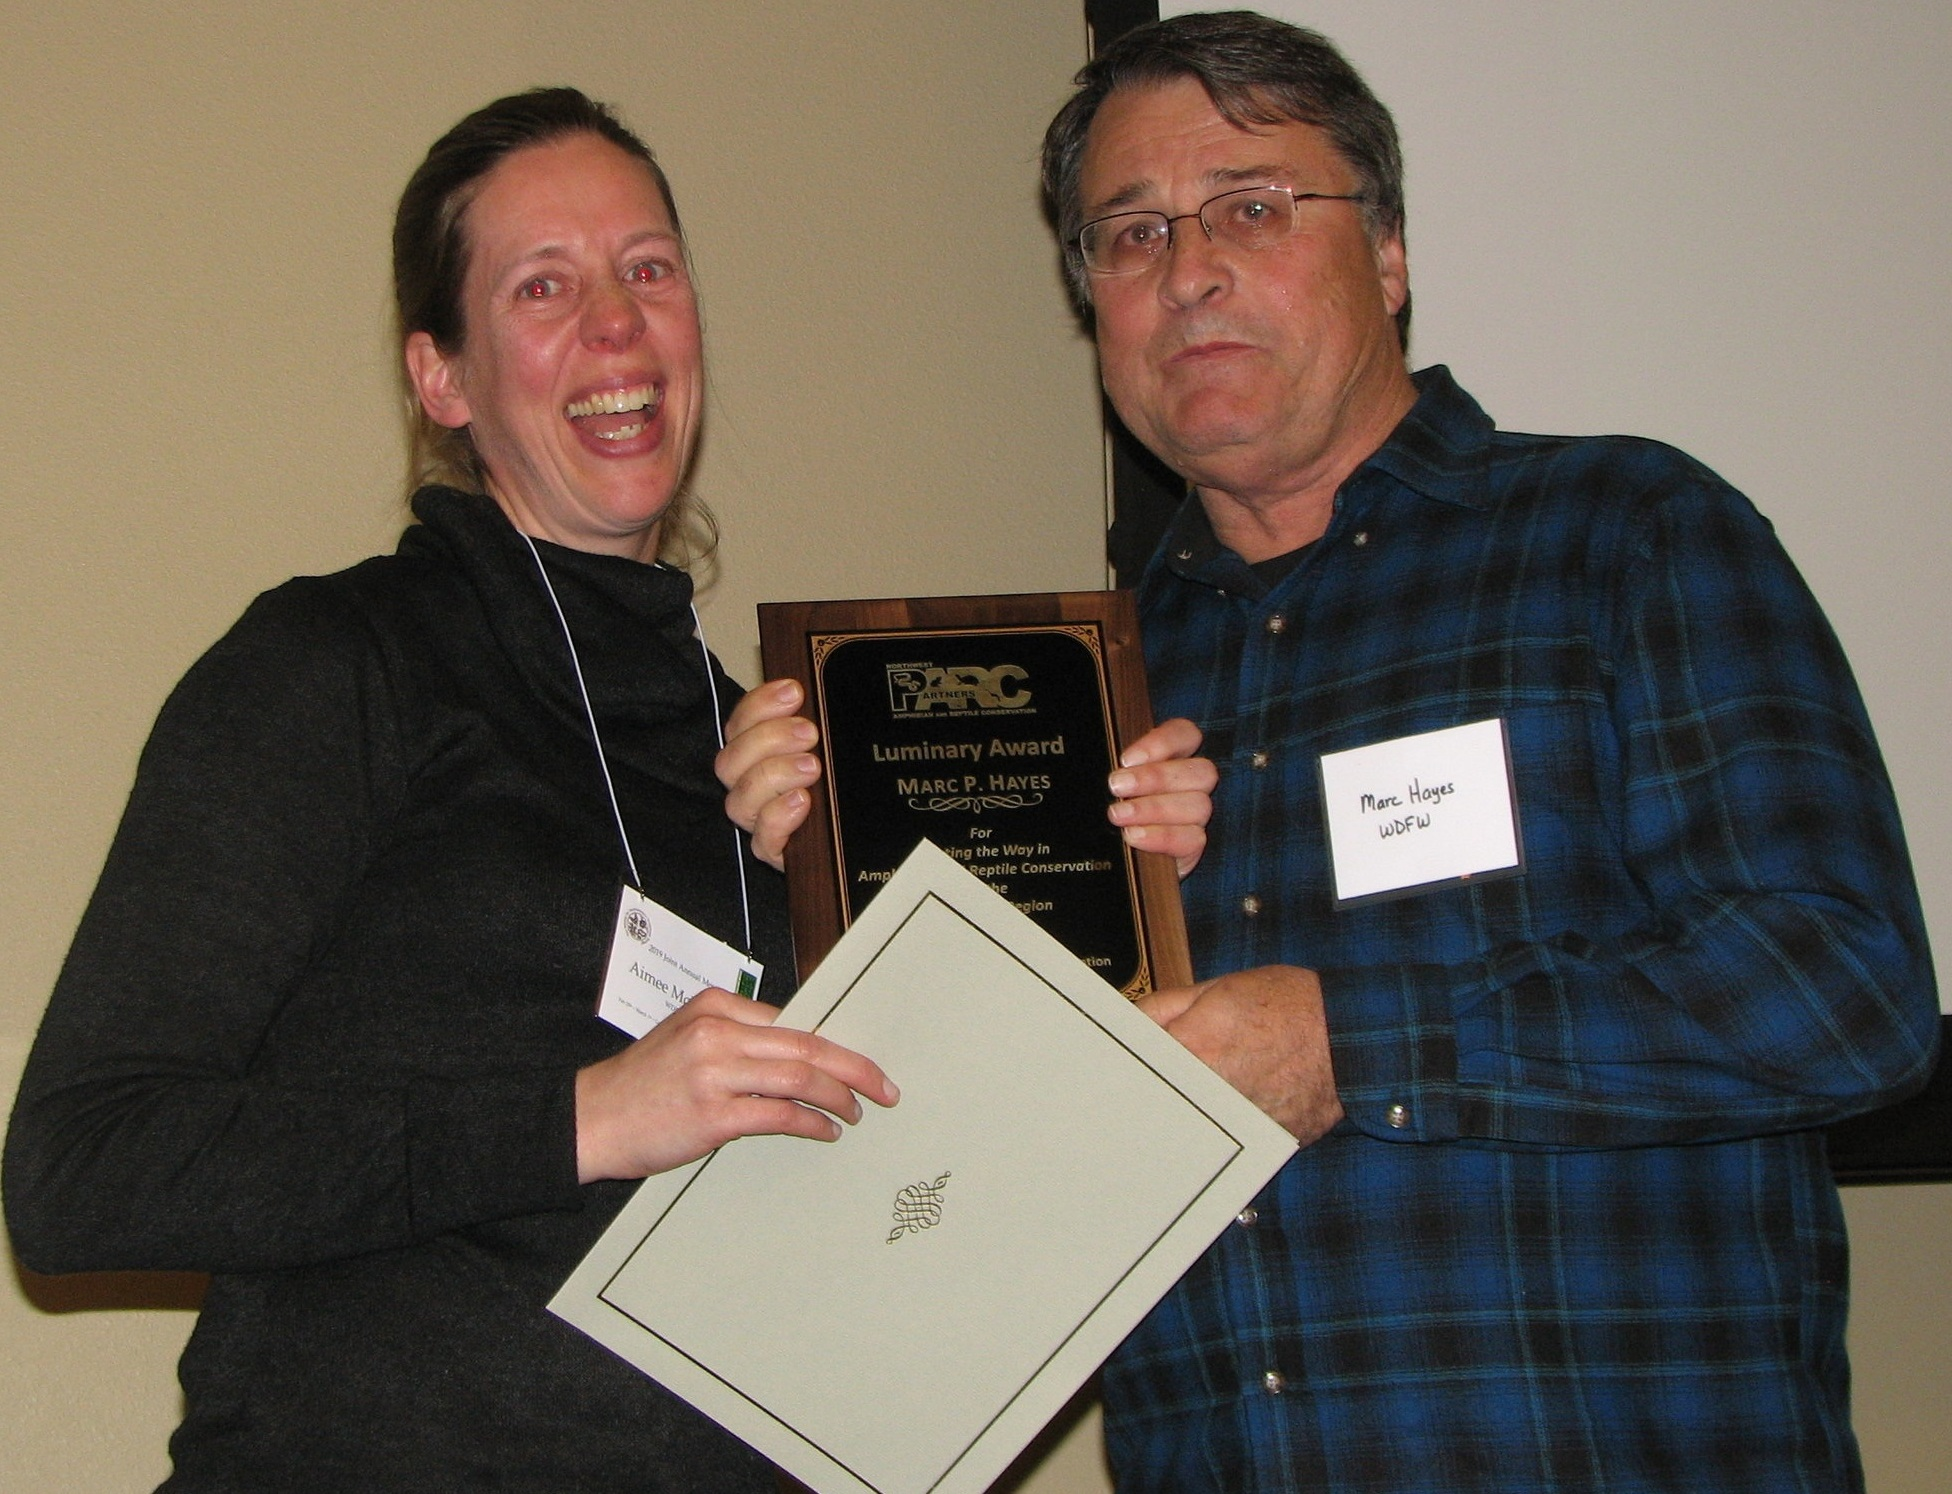 Aimee McIntyre presented Marc Hayes with his award. Marc was very surprised and consequently speechless!